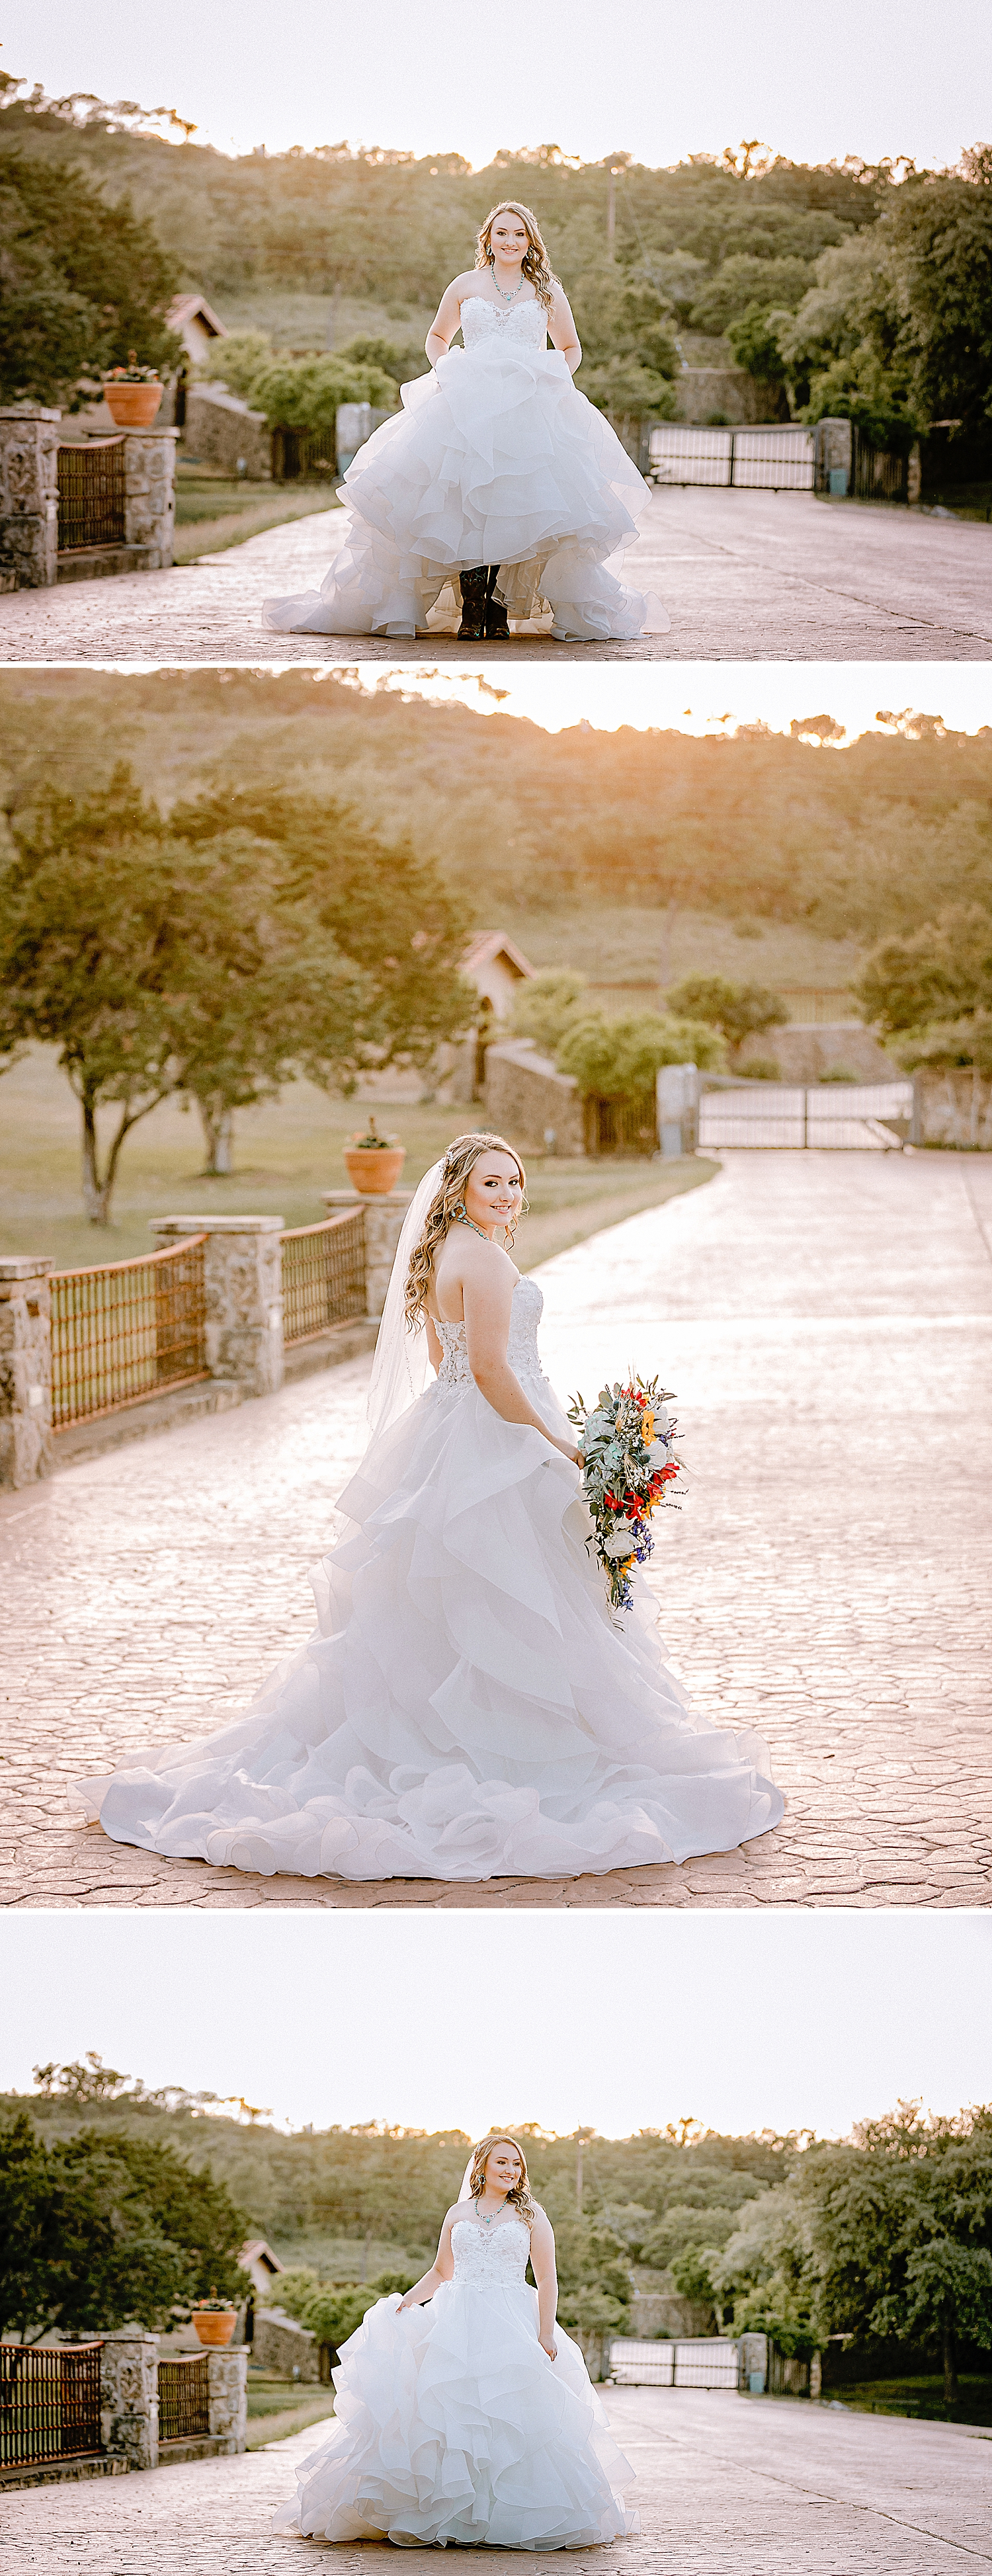 Carly-Barton-Photography-Texas-Bridals-Boerne-Rustic-Wedding-Photos_0009.jpg